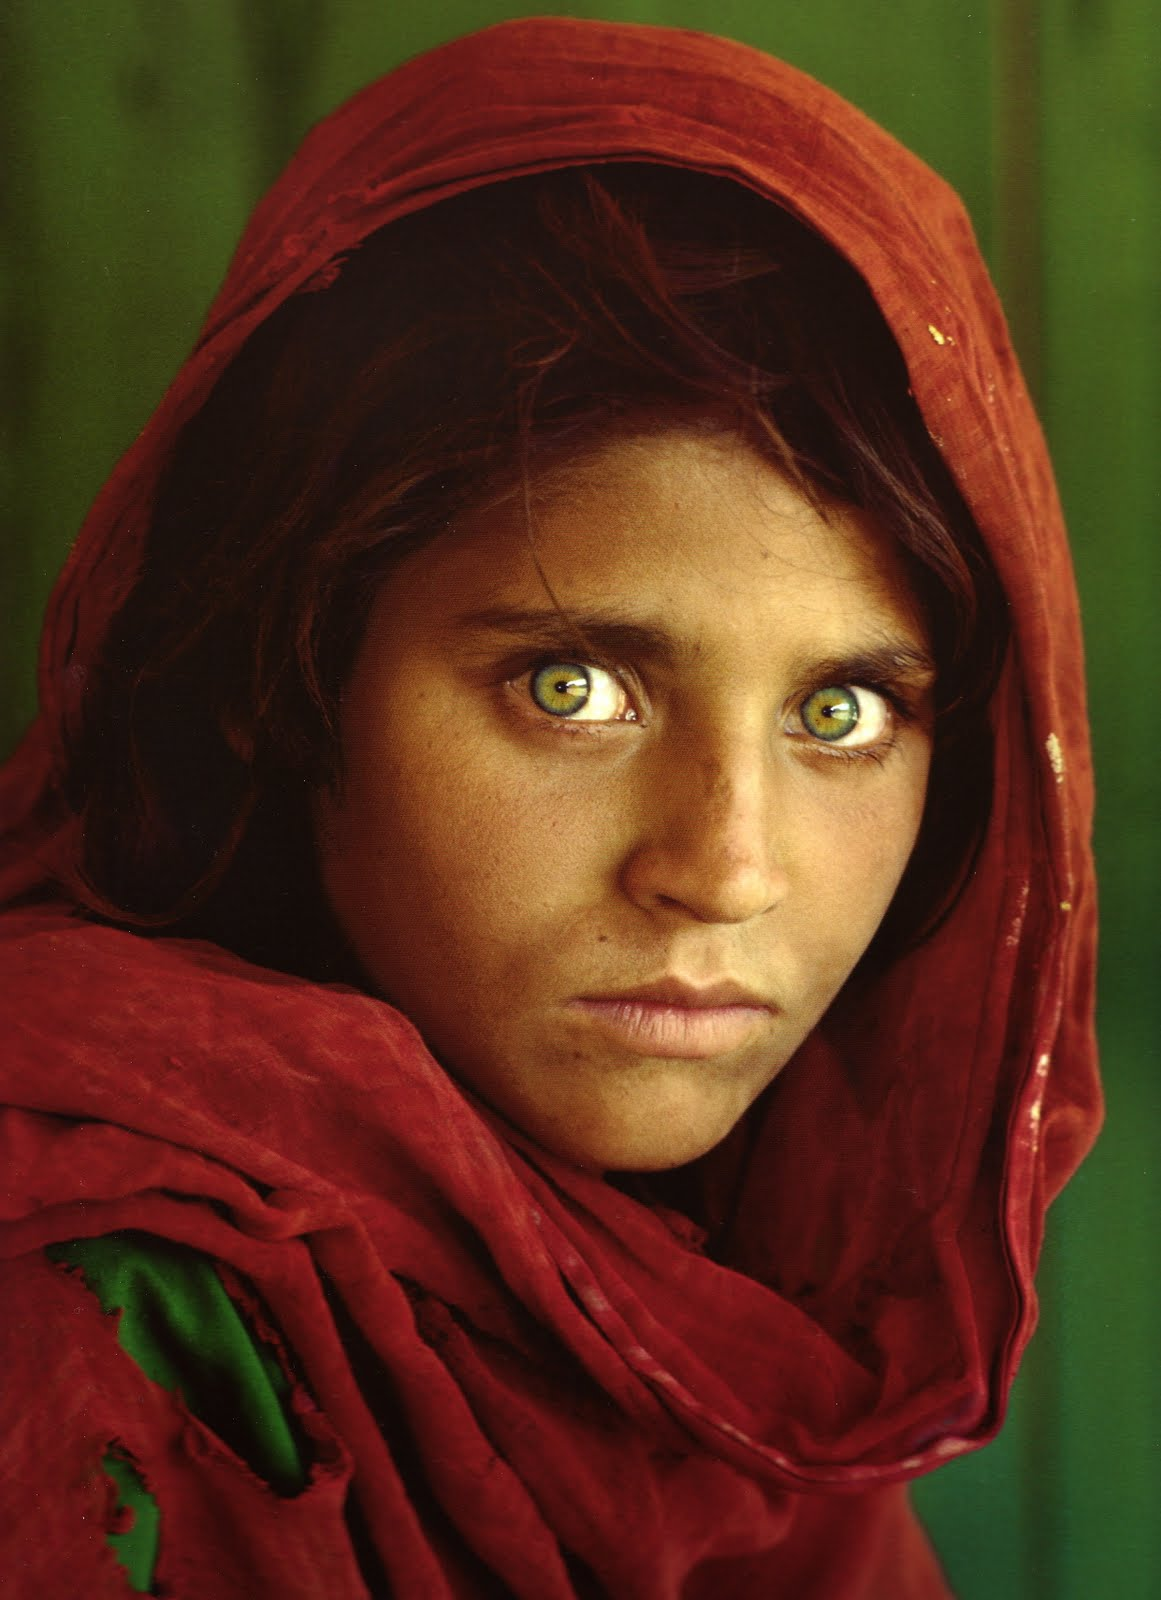 steve portraits mccurry portrait eyes job afghan photographs famous most photographer capture them soul stunning afghane femme national geographic yeux